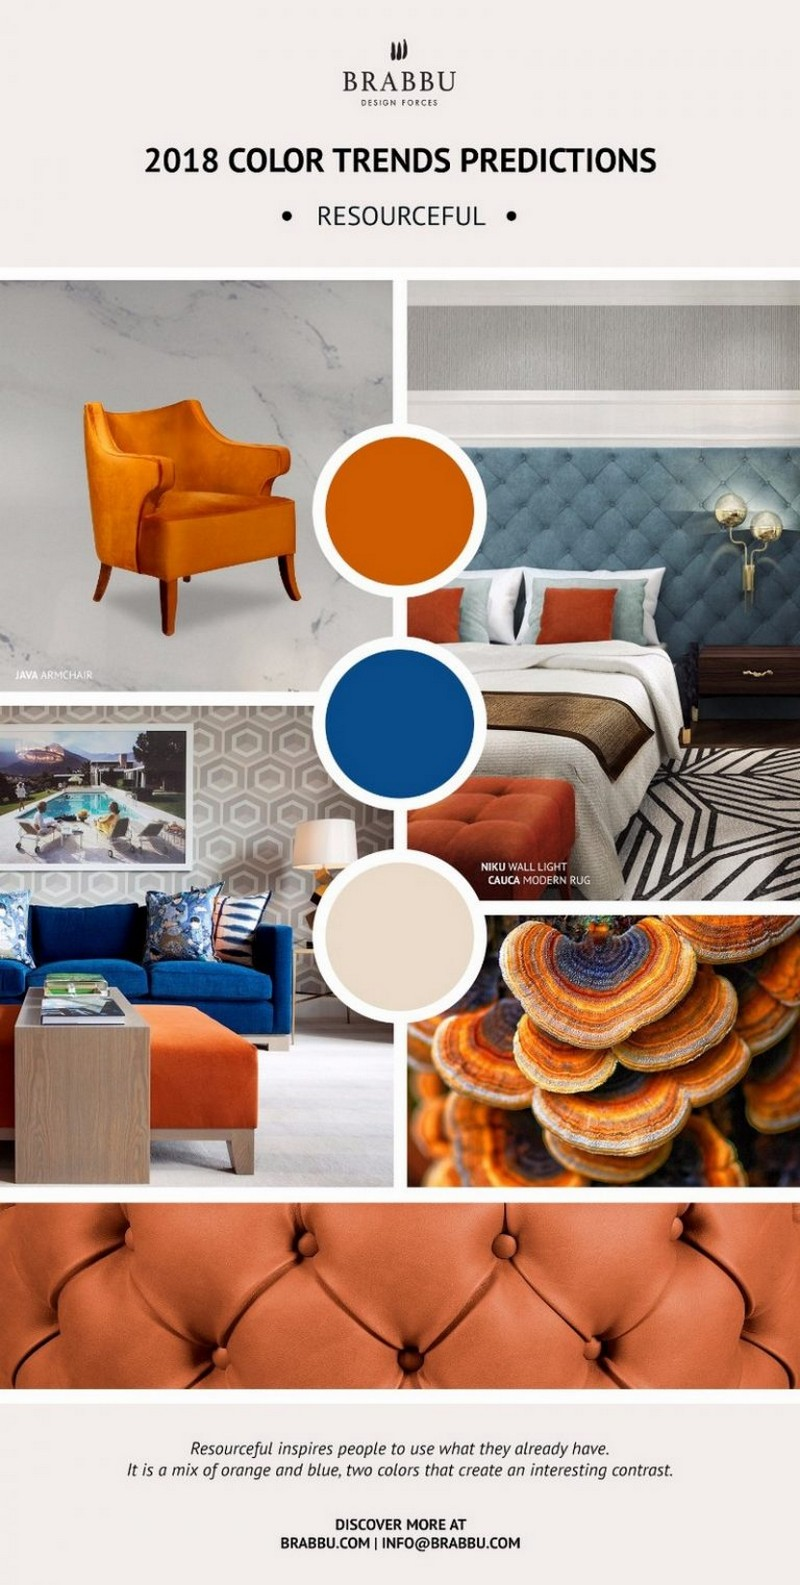 Discover More About Pantone's Color Trend Predictions for 2018 ➤ To see more news about the Interior Design Magazines, subscribe our newsletter right now! #interiordesignmagazines #bestdesignmagazines #interiordesign #designmagazines #pantone #pantone2018 #colorscheme #colorschemeideas @imagazines pantone's color trend predictions for 2018 Discover More About Pantone's Color Trend Predictions for 2018 Discover More About Pantones Color Trend Predictions for 2018 7